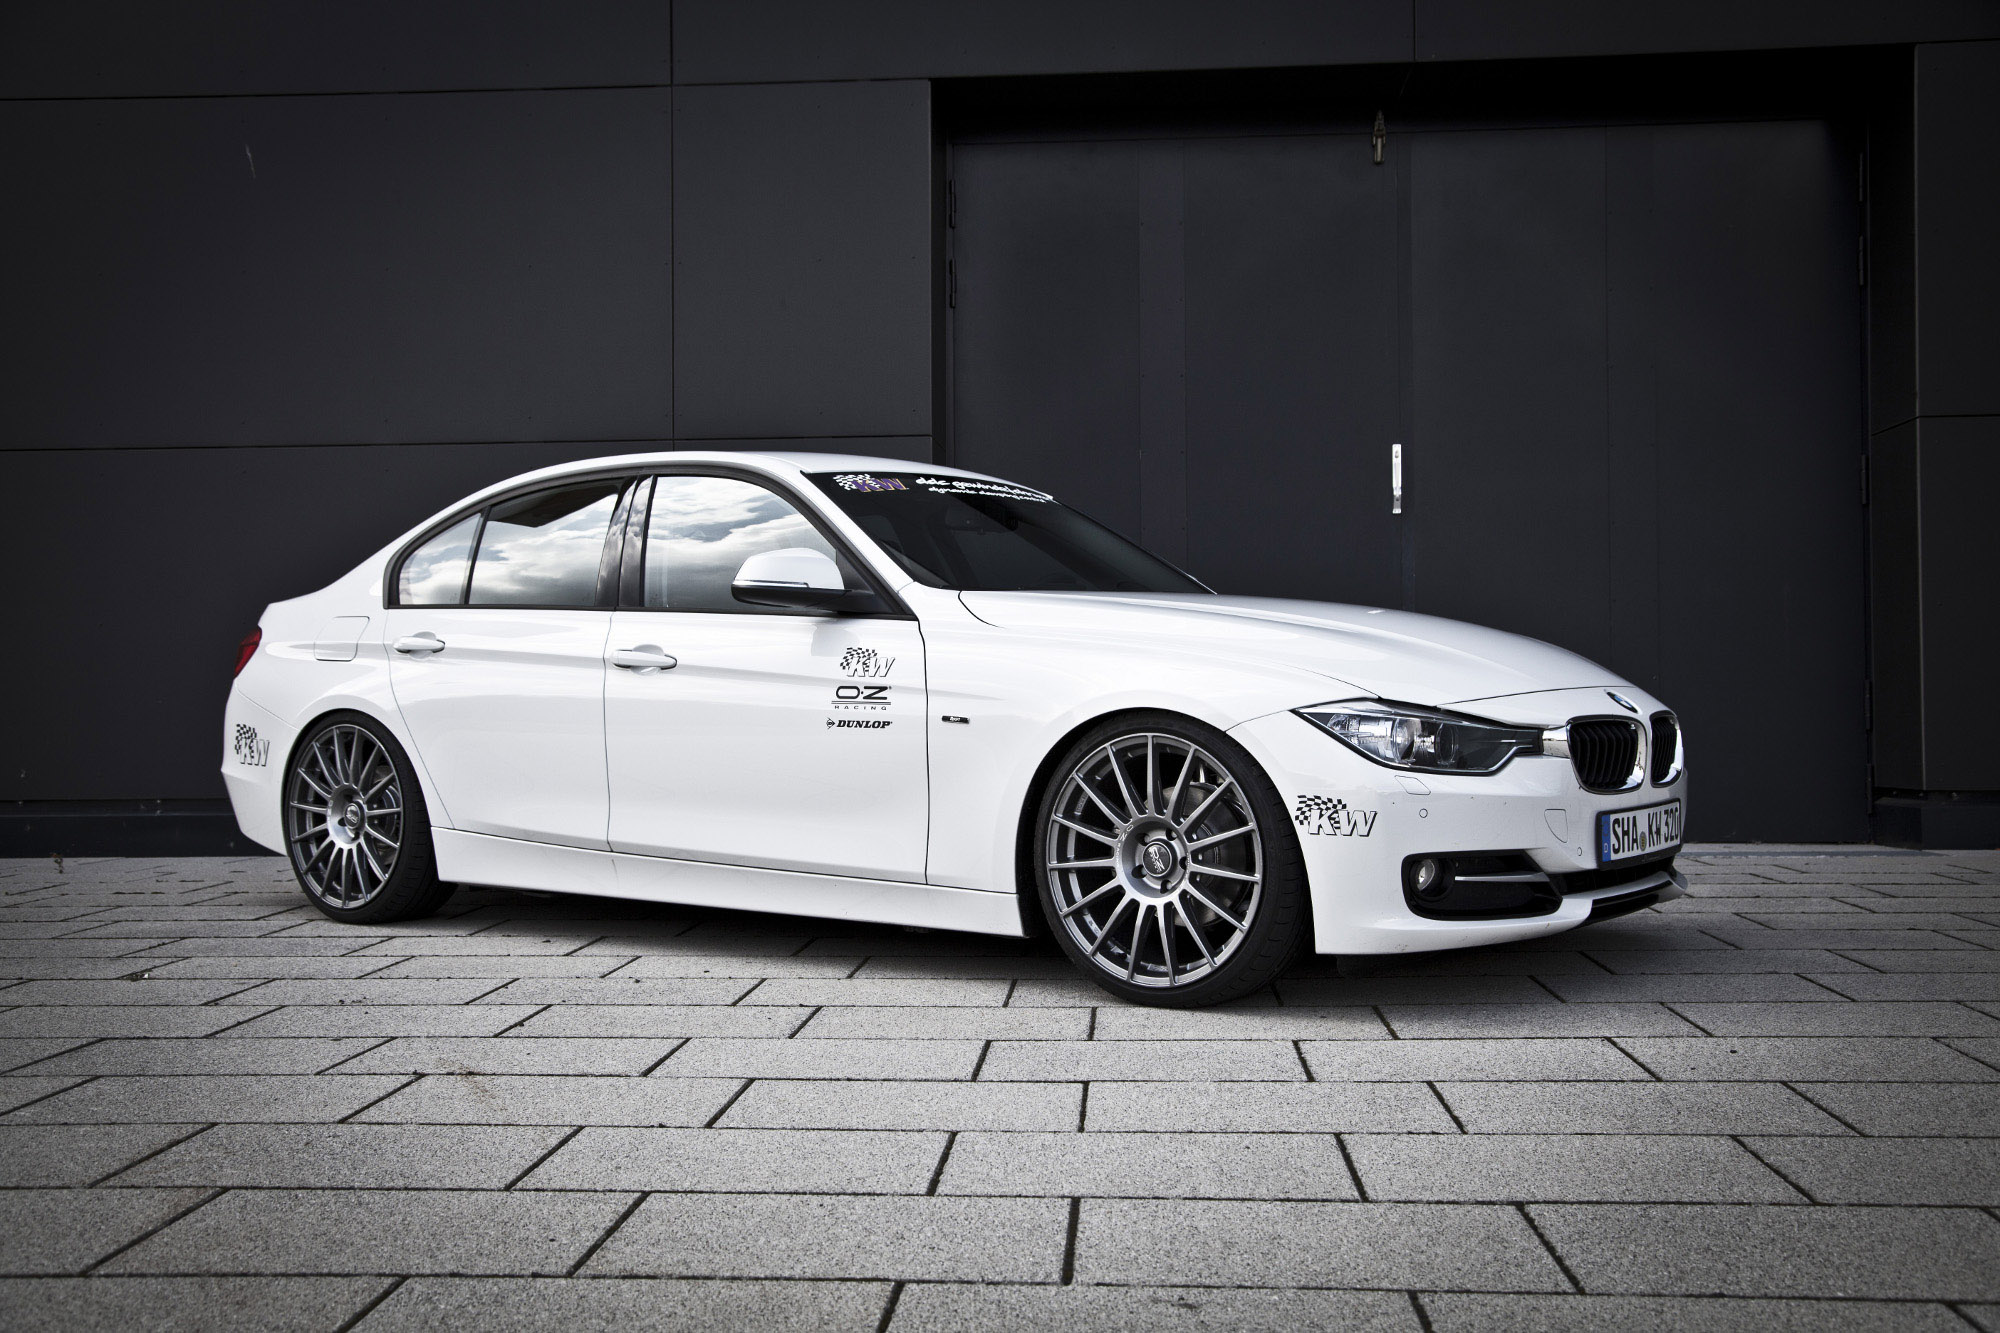 kw 2012 bmw 3 series f30 tuning wallpaper 2000x1333. Black Bedroom Furniture Sets. Home Design Ideas